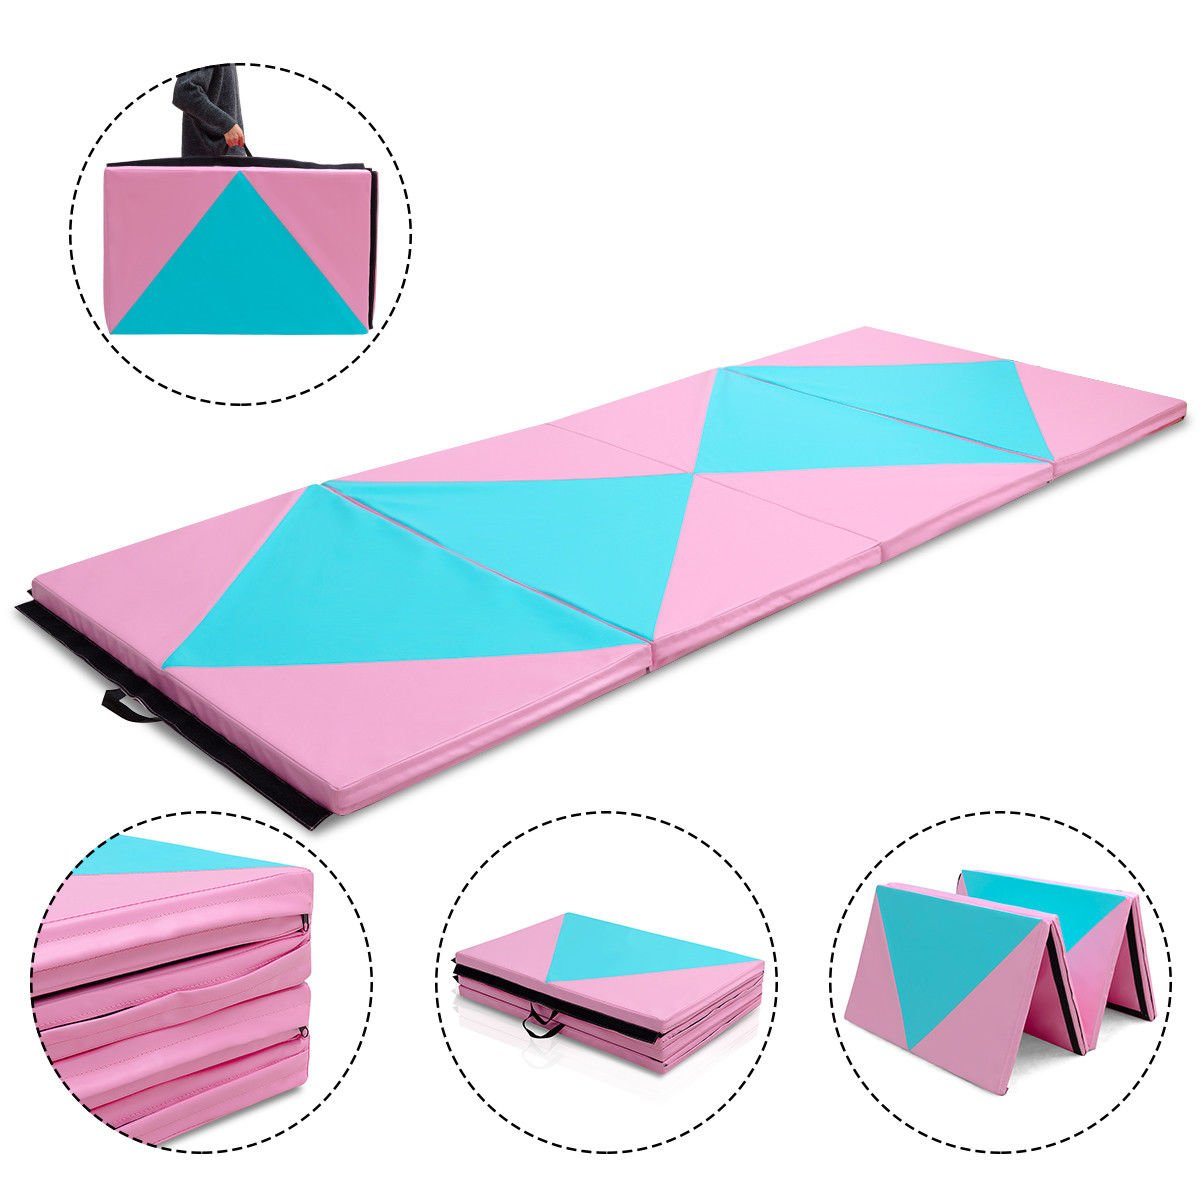 COSTWAY 4'X10'X2 Gymnastics Mat Folding Portable Exercise Aerobics Fitness Gym Exercise by COSTWAY (Image #1)